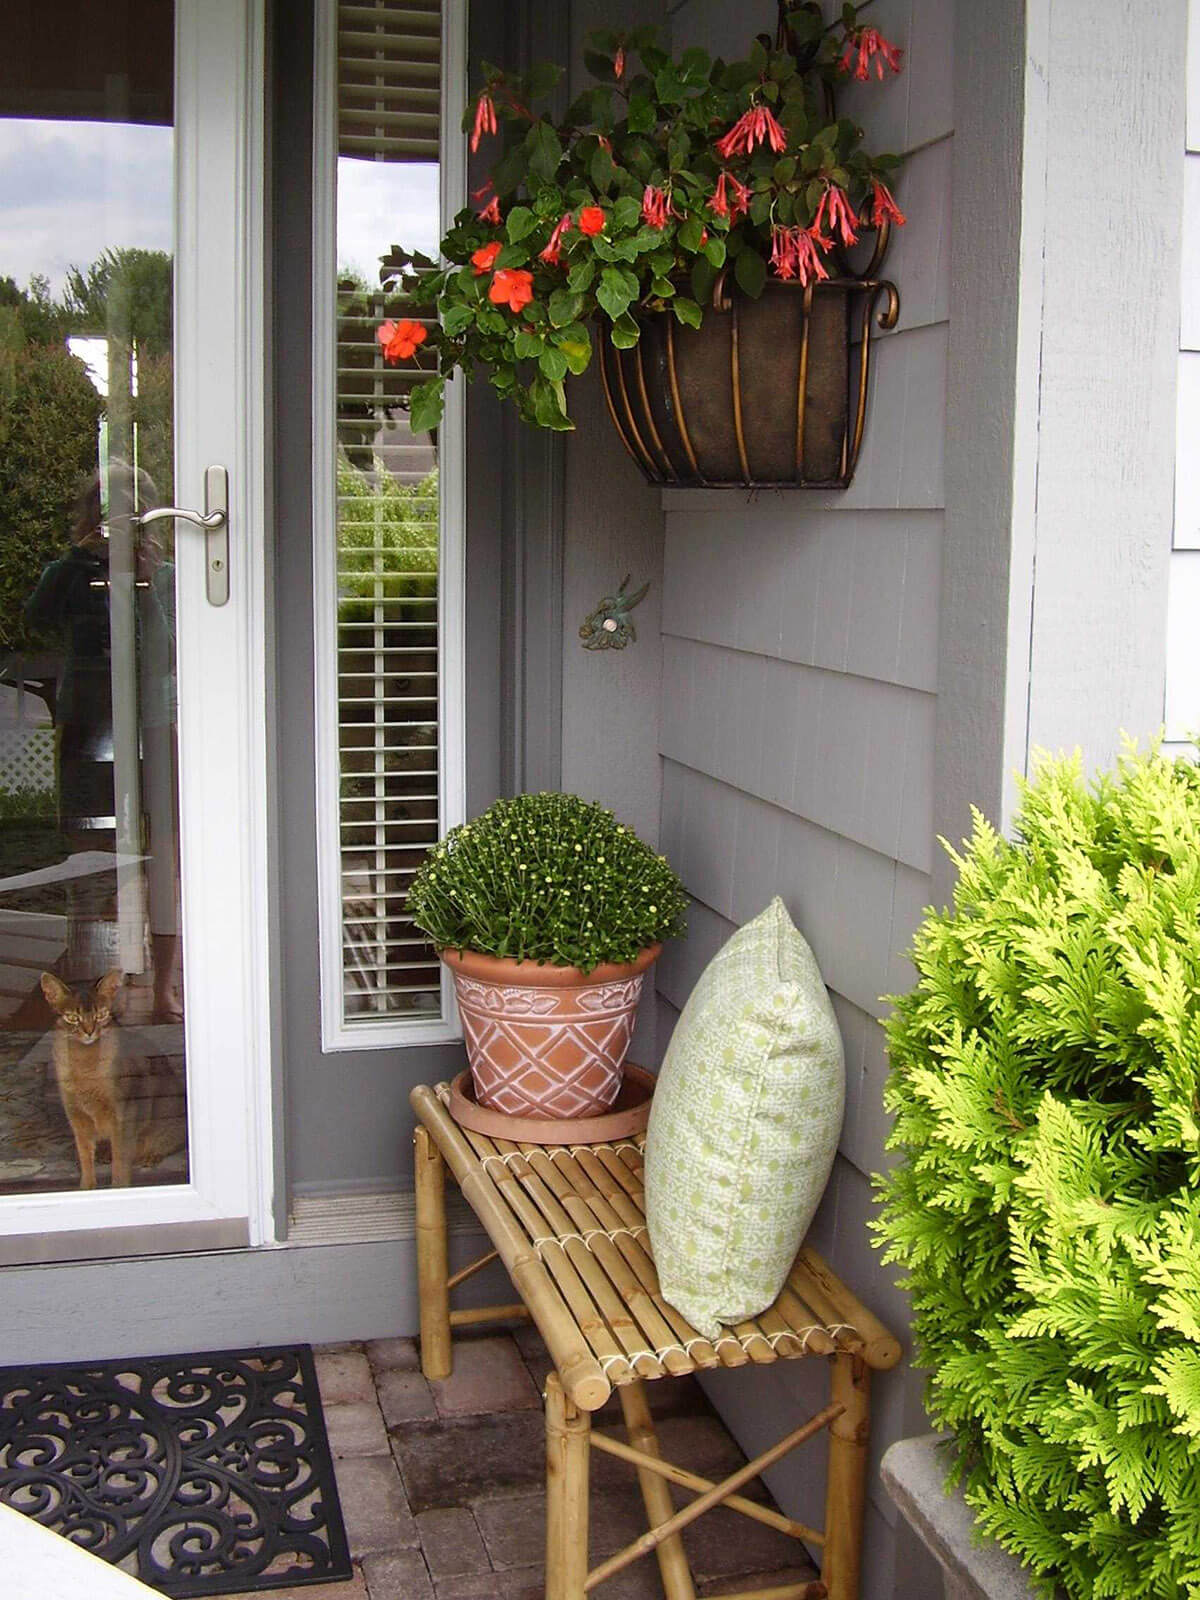 Coir Planter with Bright Orange Flowers